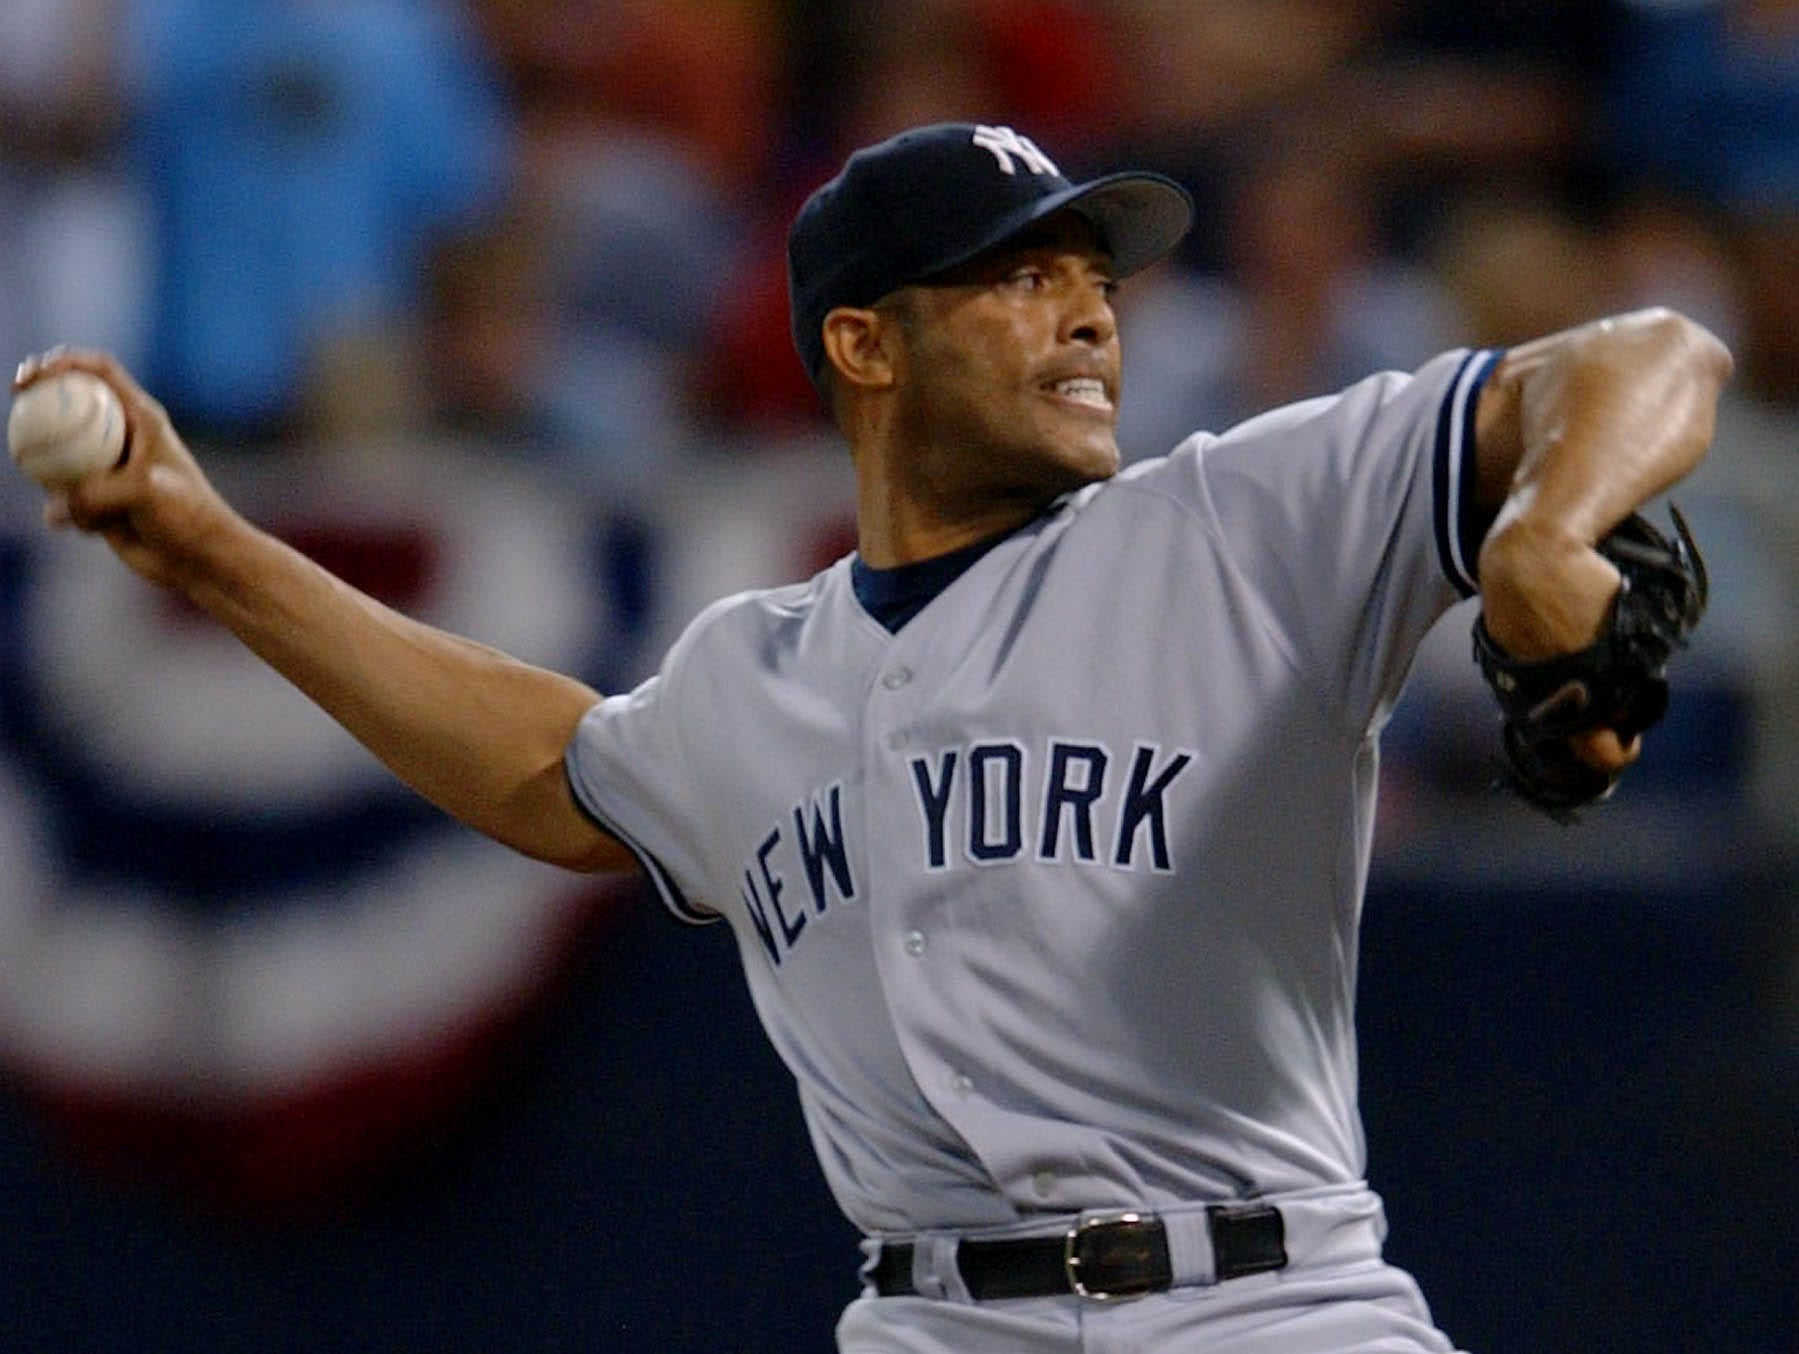 53 – Mariano Rivera, Yankees, 2004